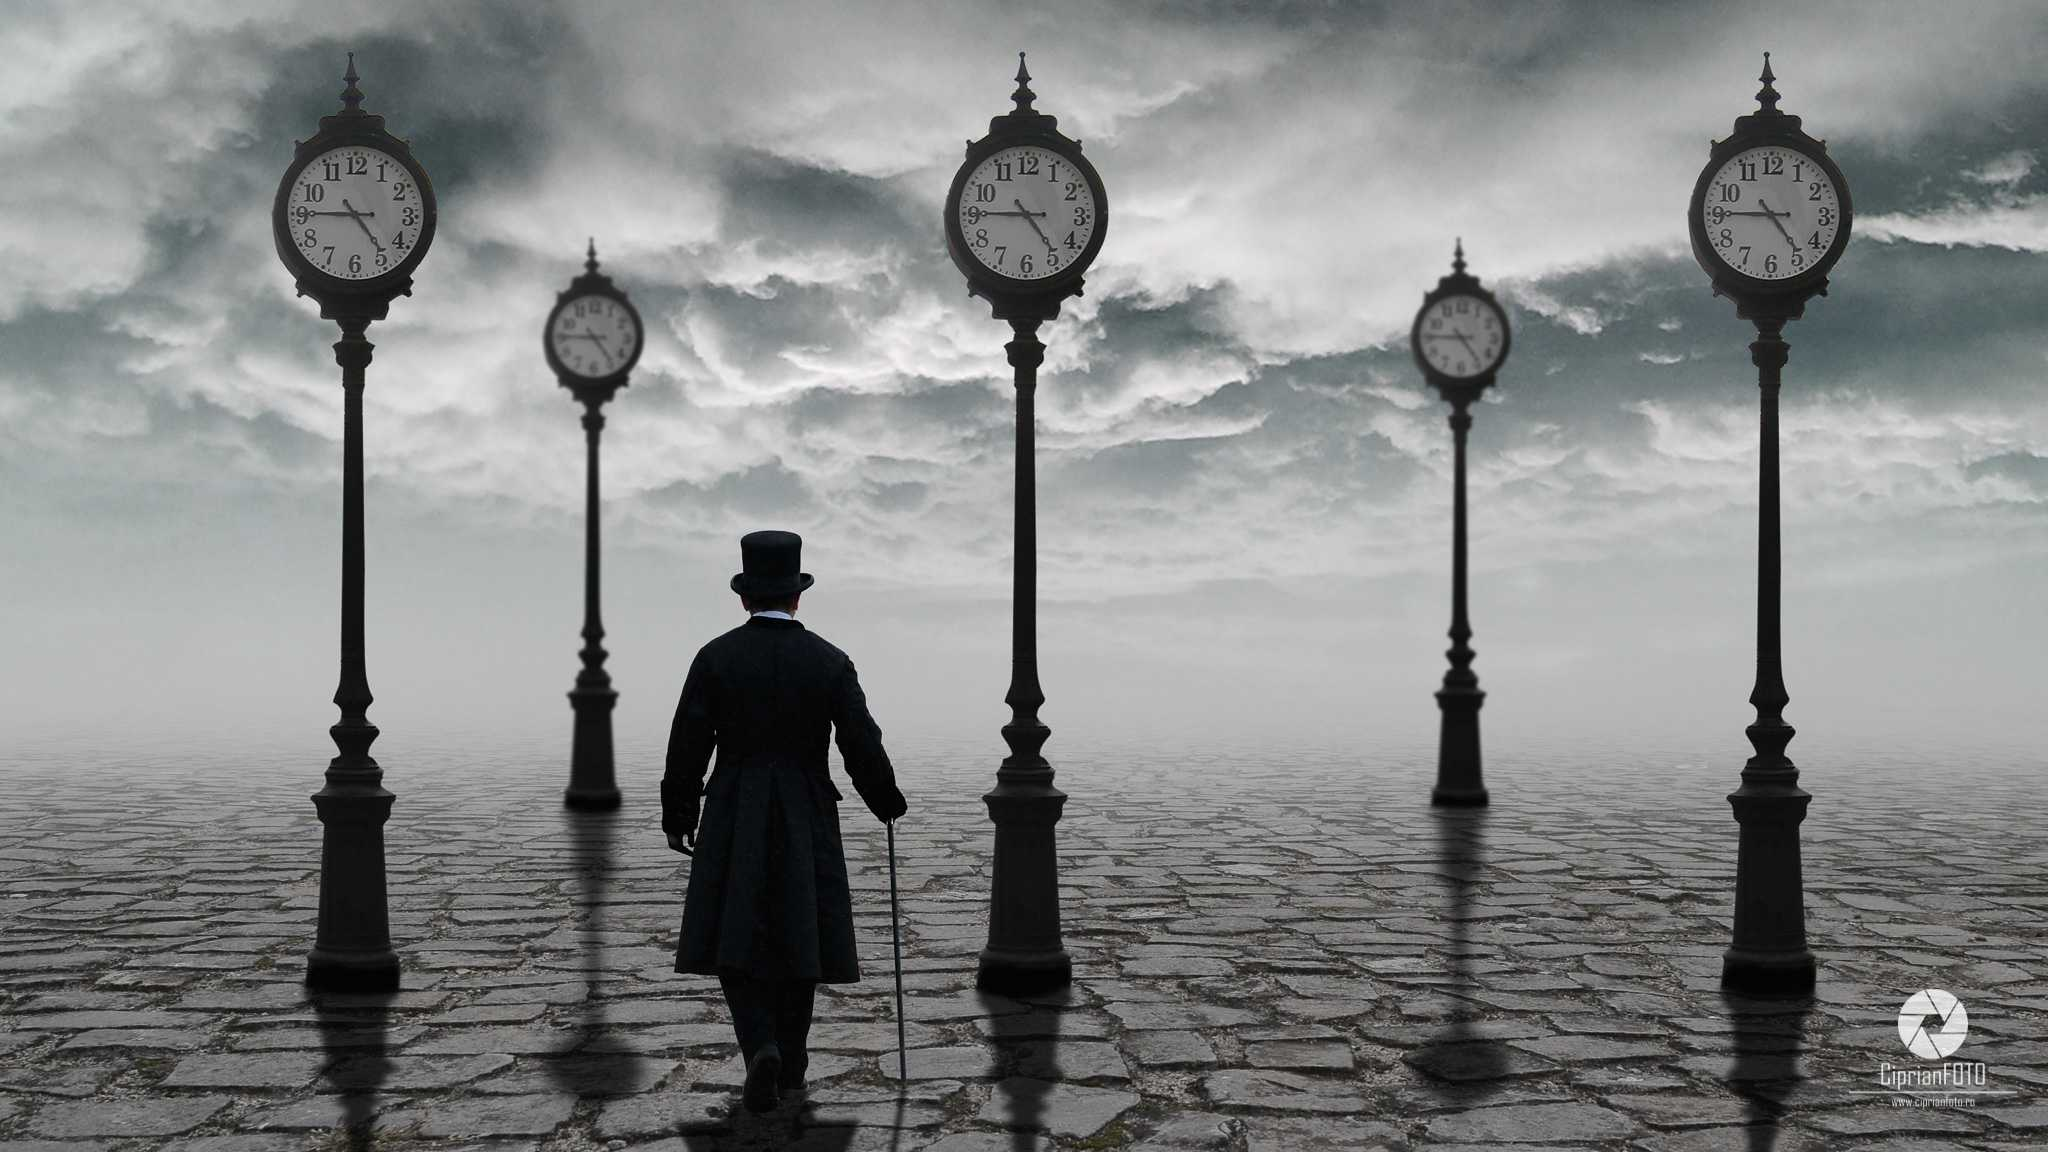 Among_The_Clocks_Photoshop_Manipulation_Tutorial_CiprianFOTO